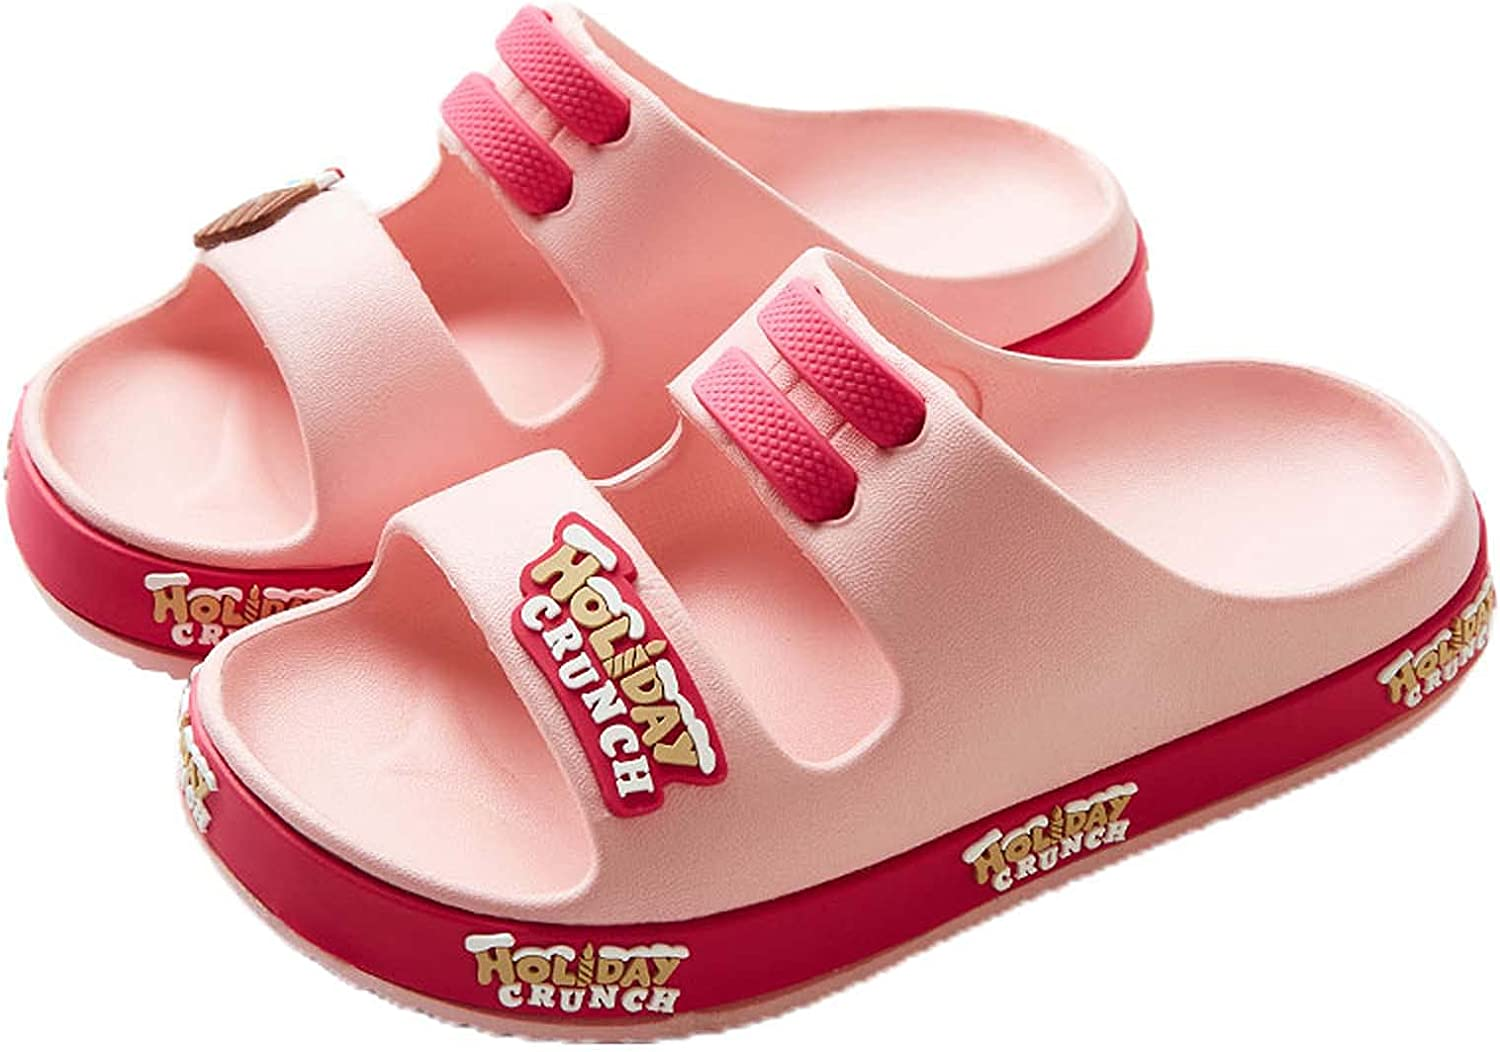 4-12 Years Children Soft Sole Rbeach Summer Sh Large discharge sale Slippers Non New Orleans Mall Slip